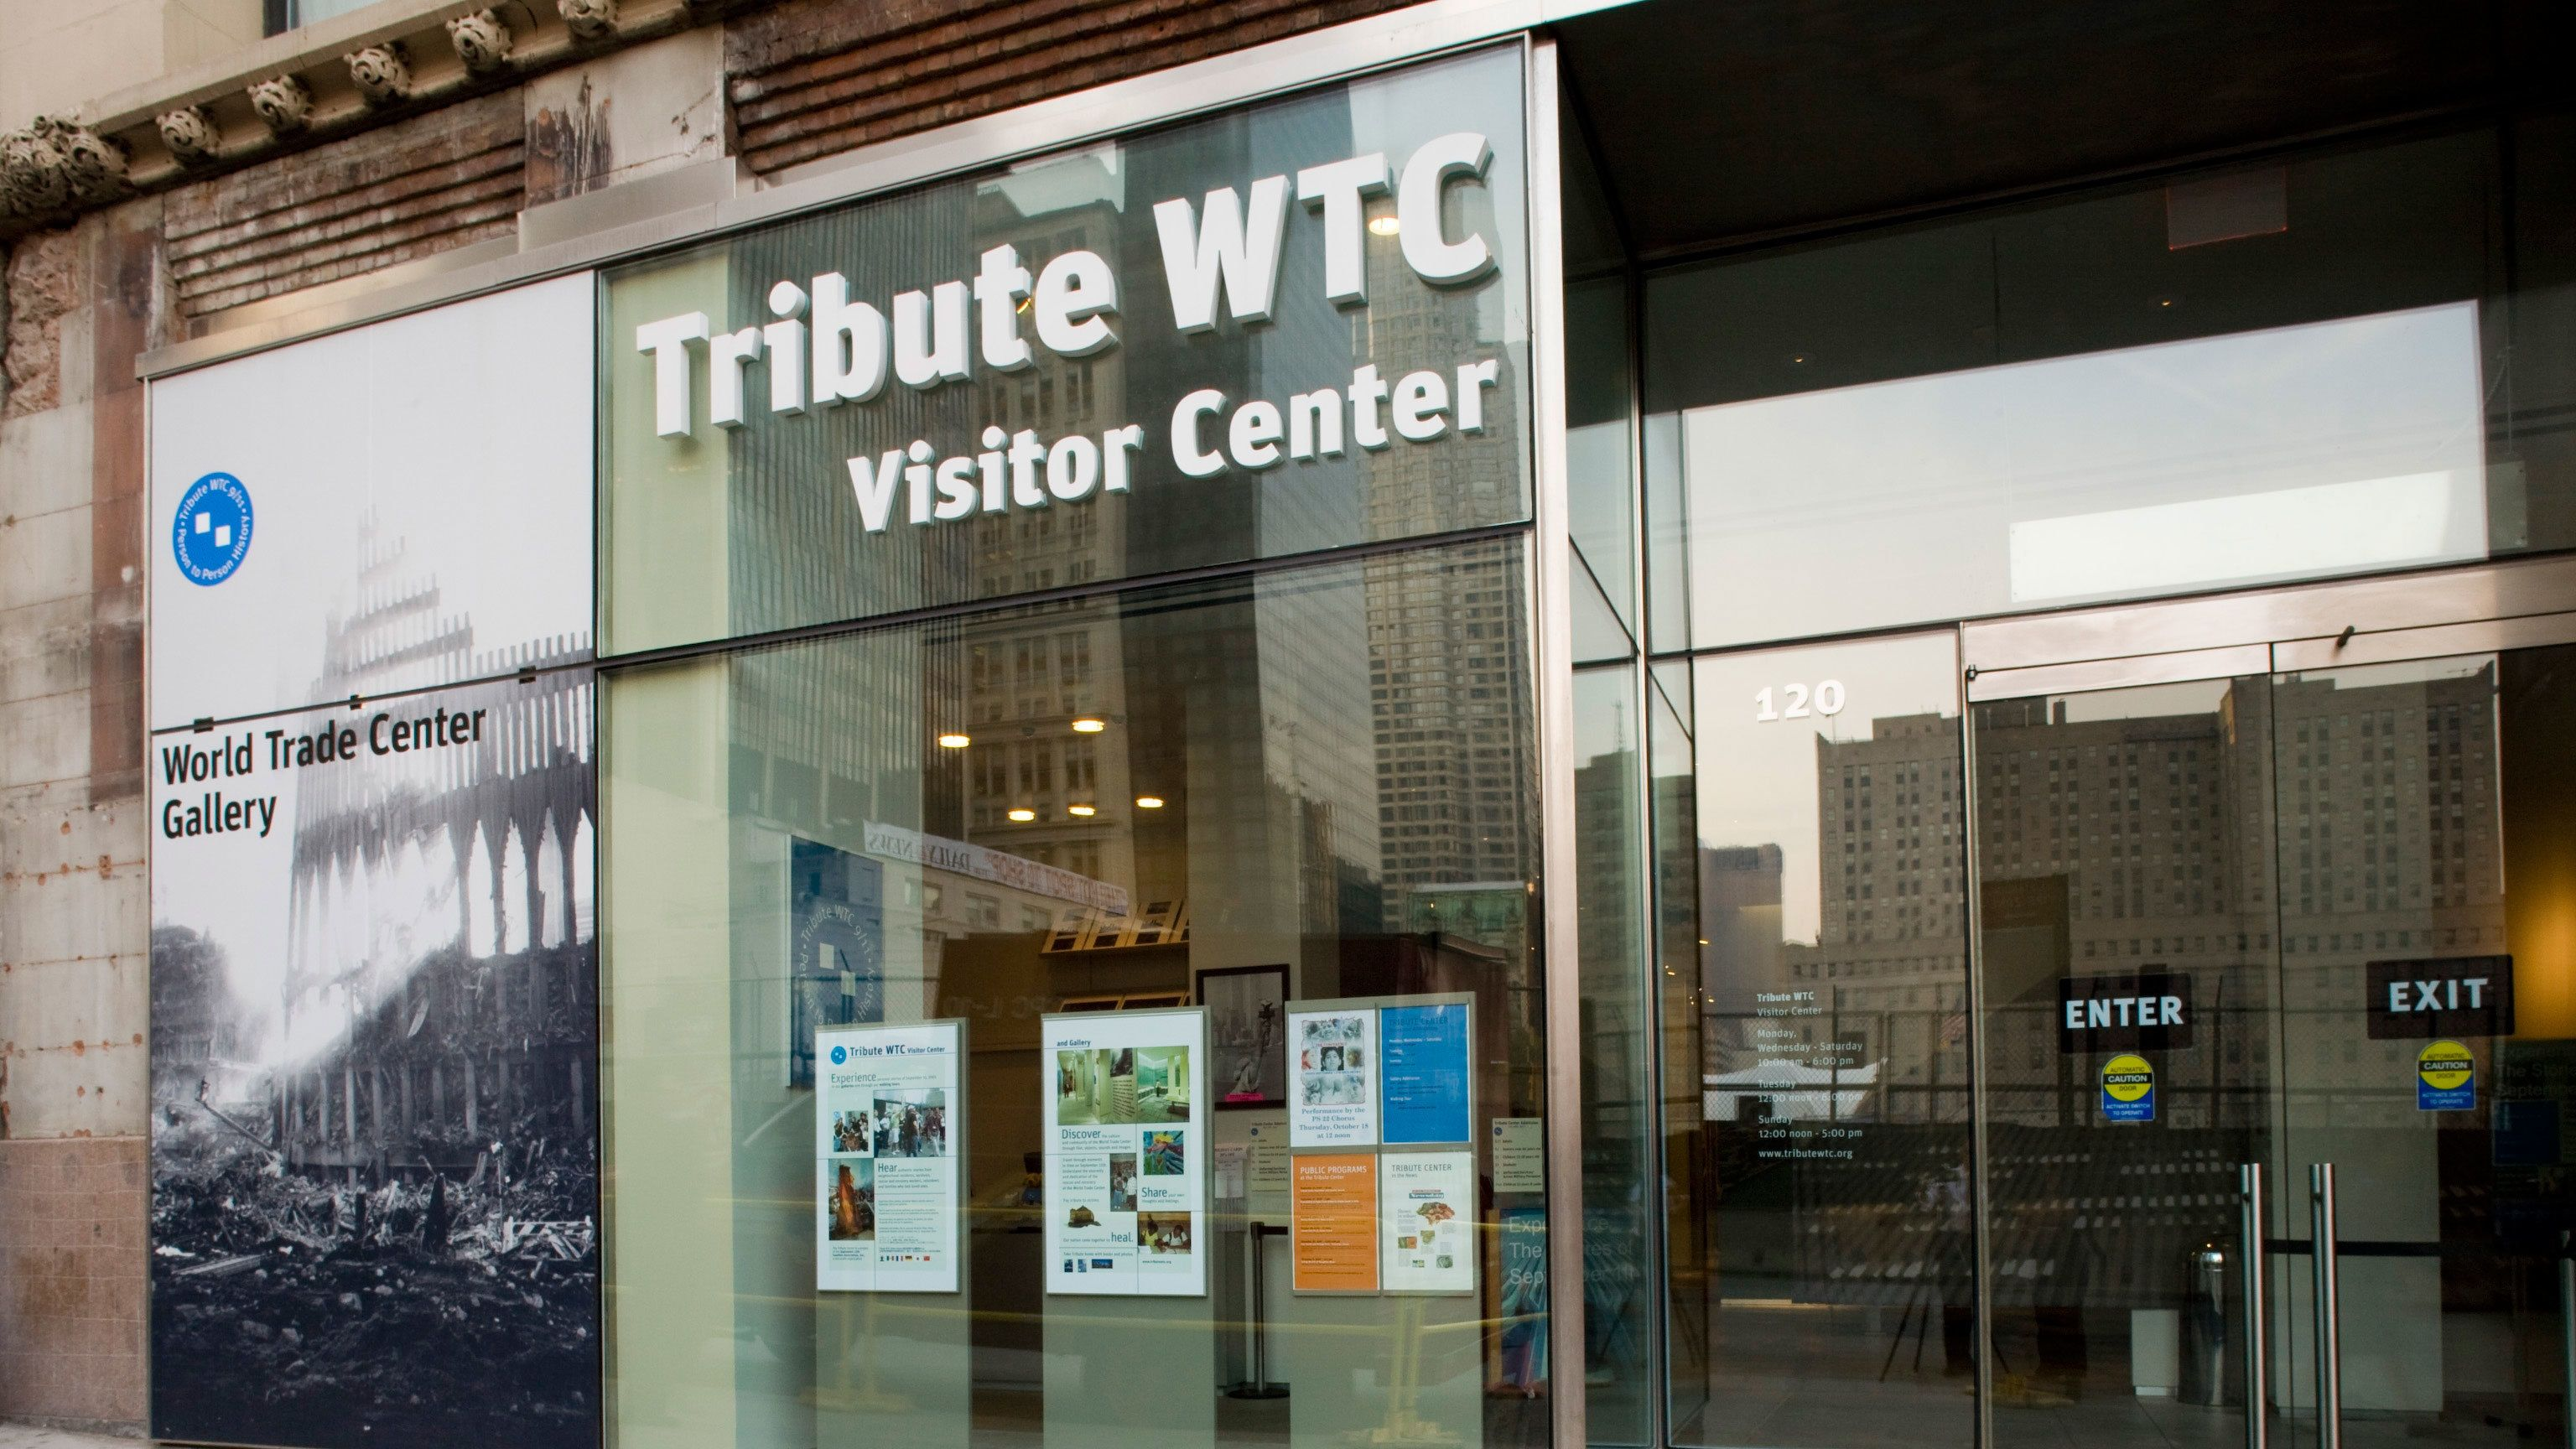 The Tribute World Trade Center Visitor Center in New York